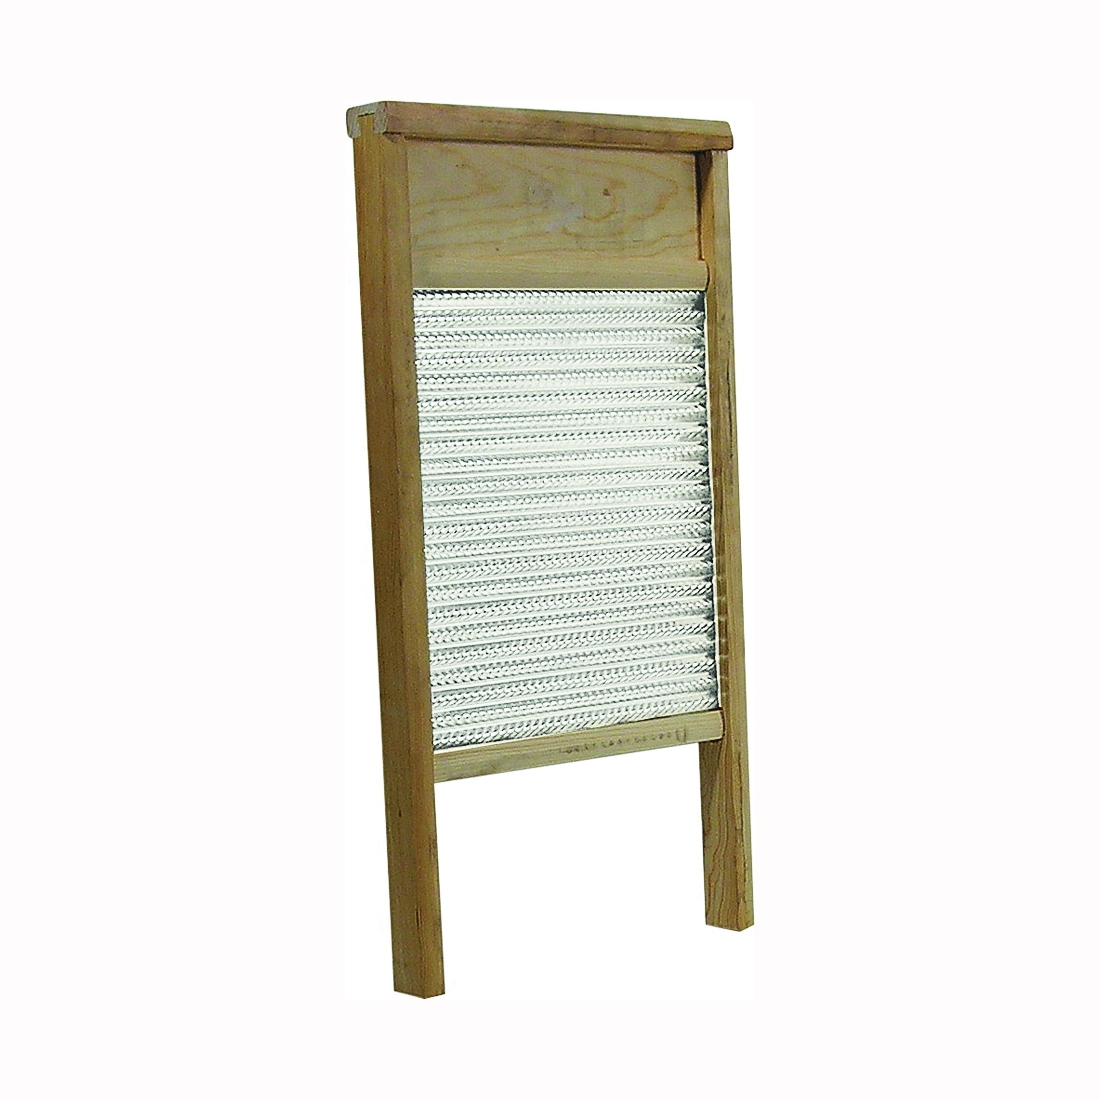 Picture of Behrens BWBG12 Galvanized Washboard, 1-3/4 in L, 12-3/8 in W, Wood